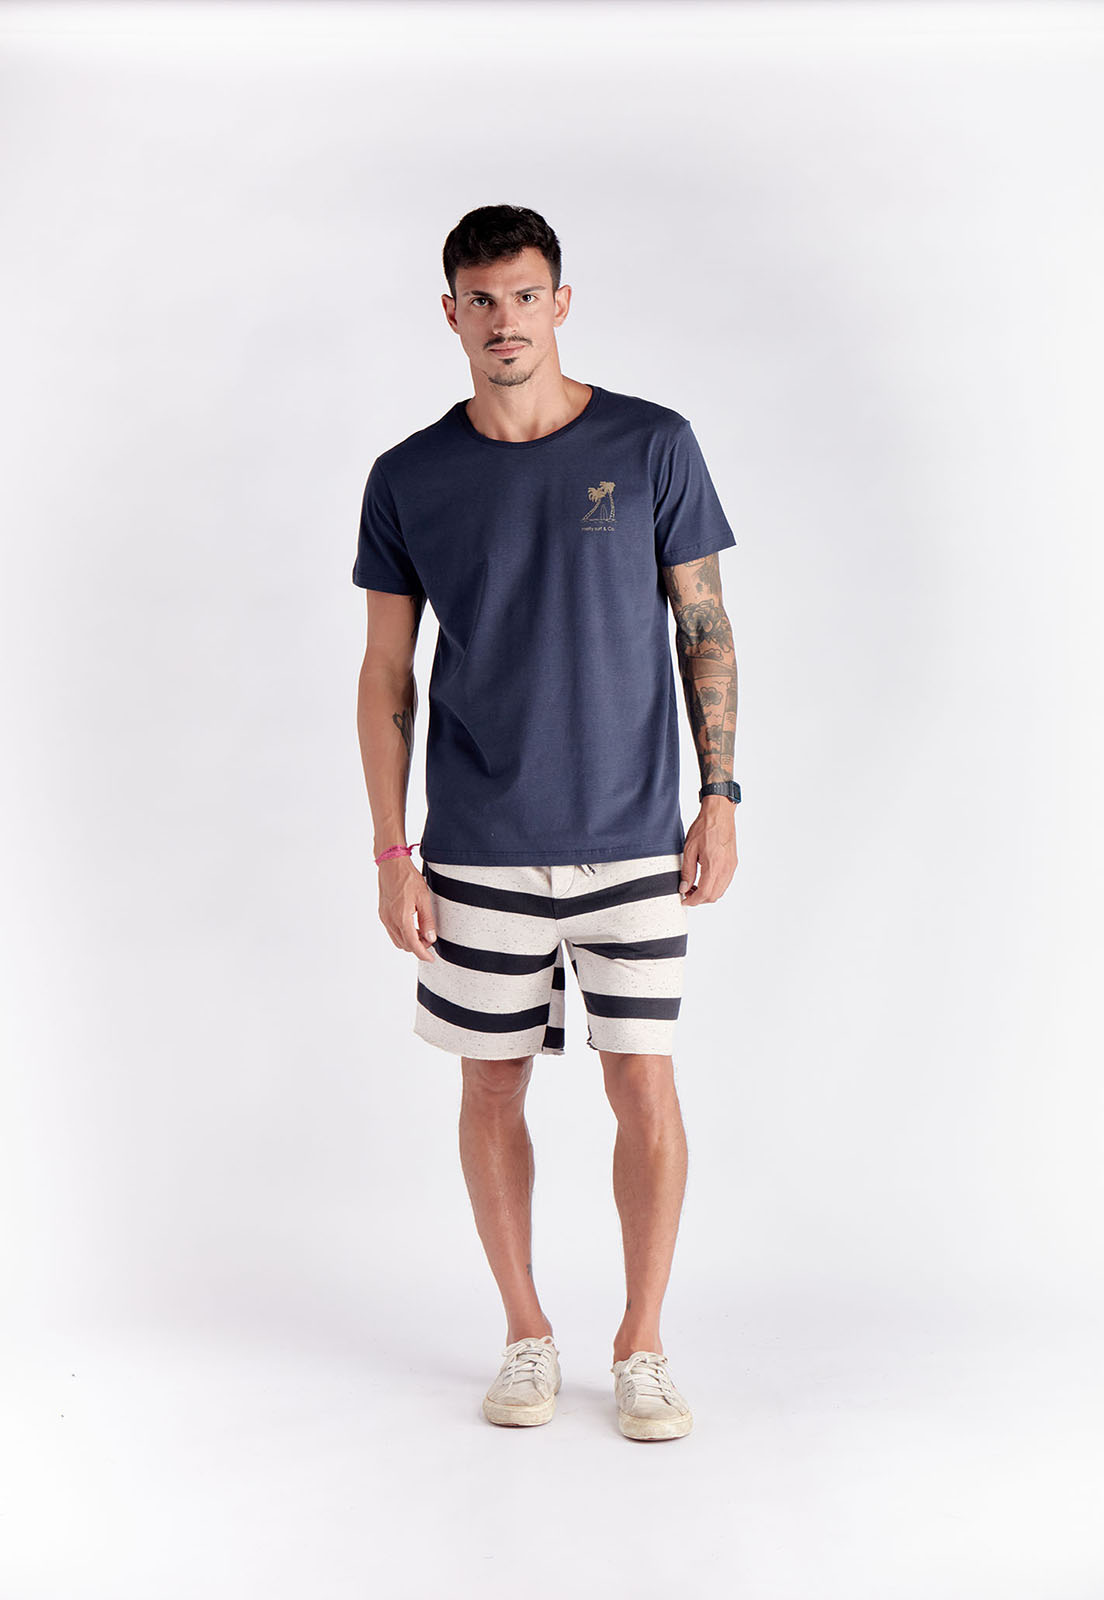 T-shirt Afternoon Marinho Melty  - melty surf & Co.